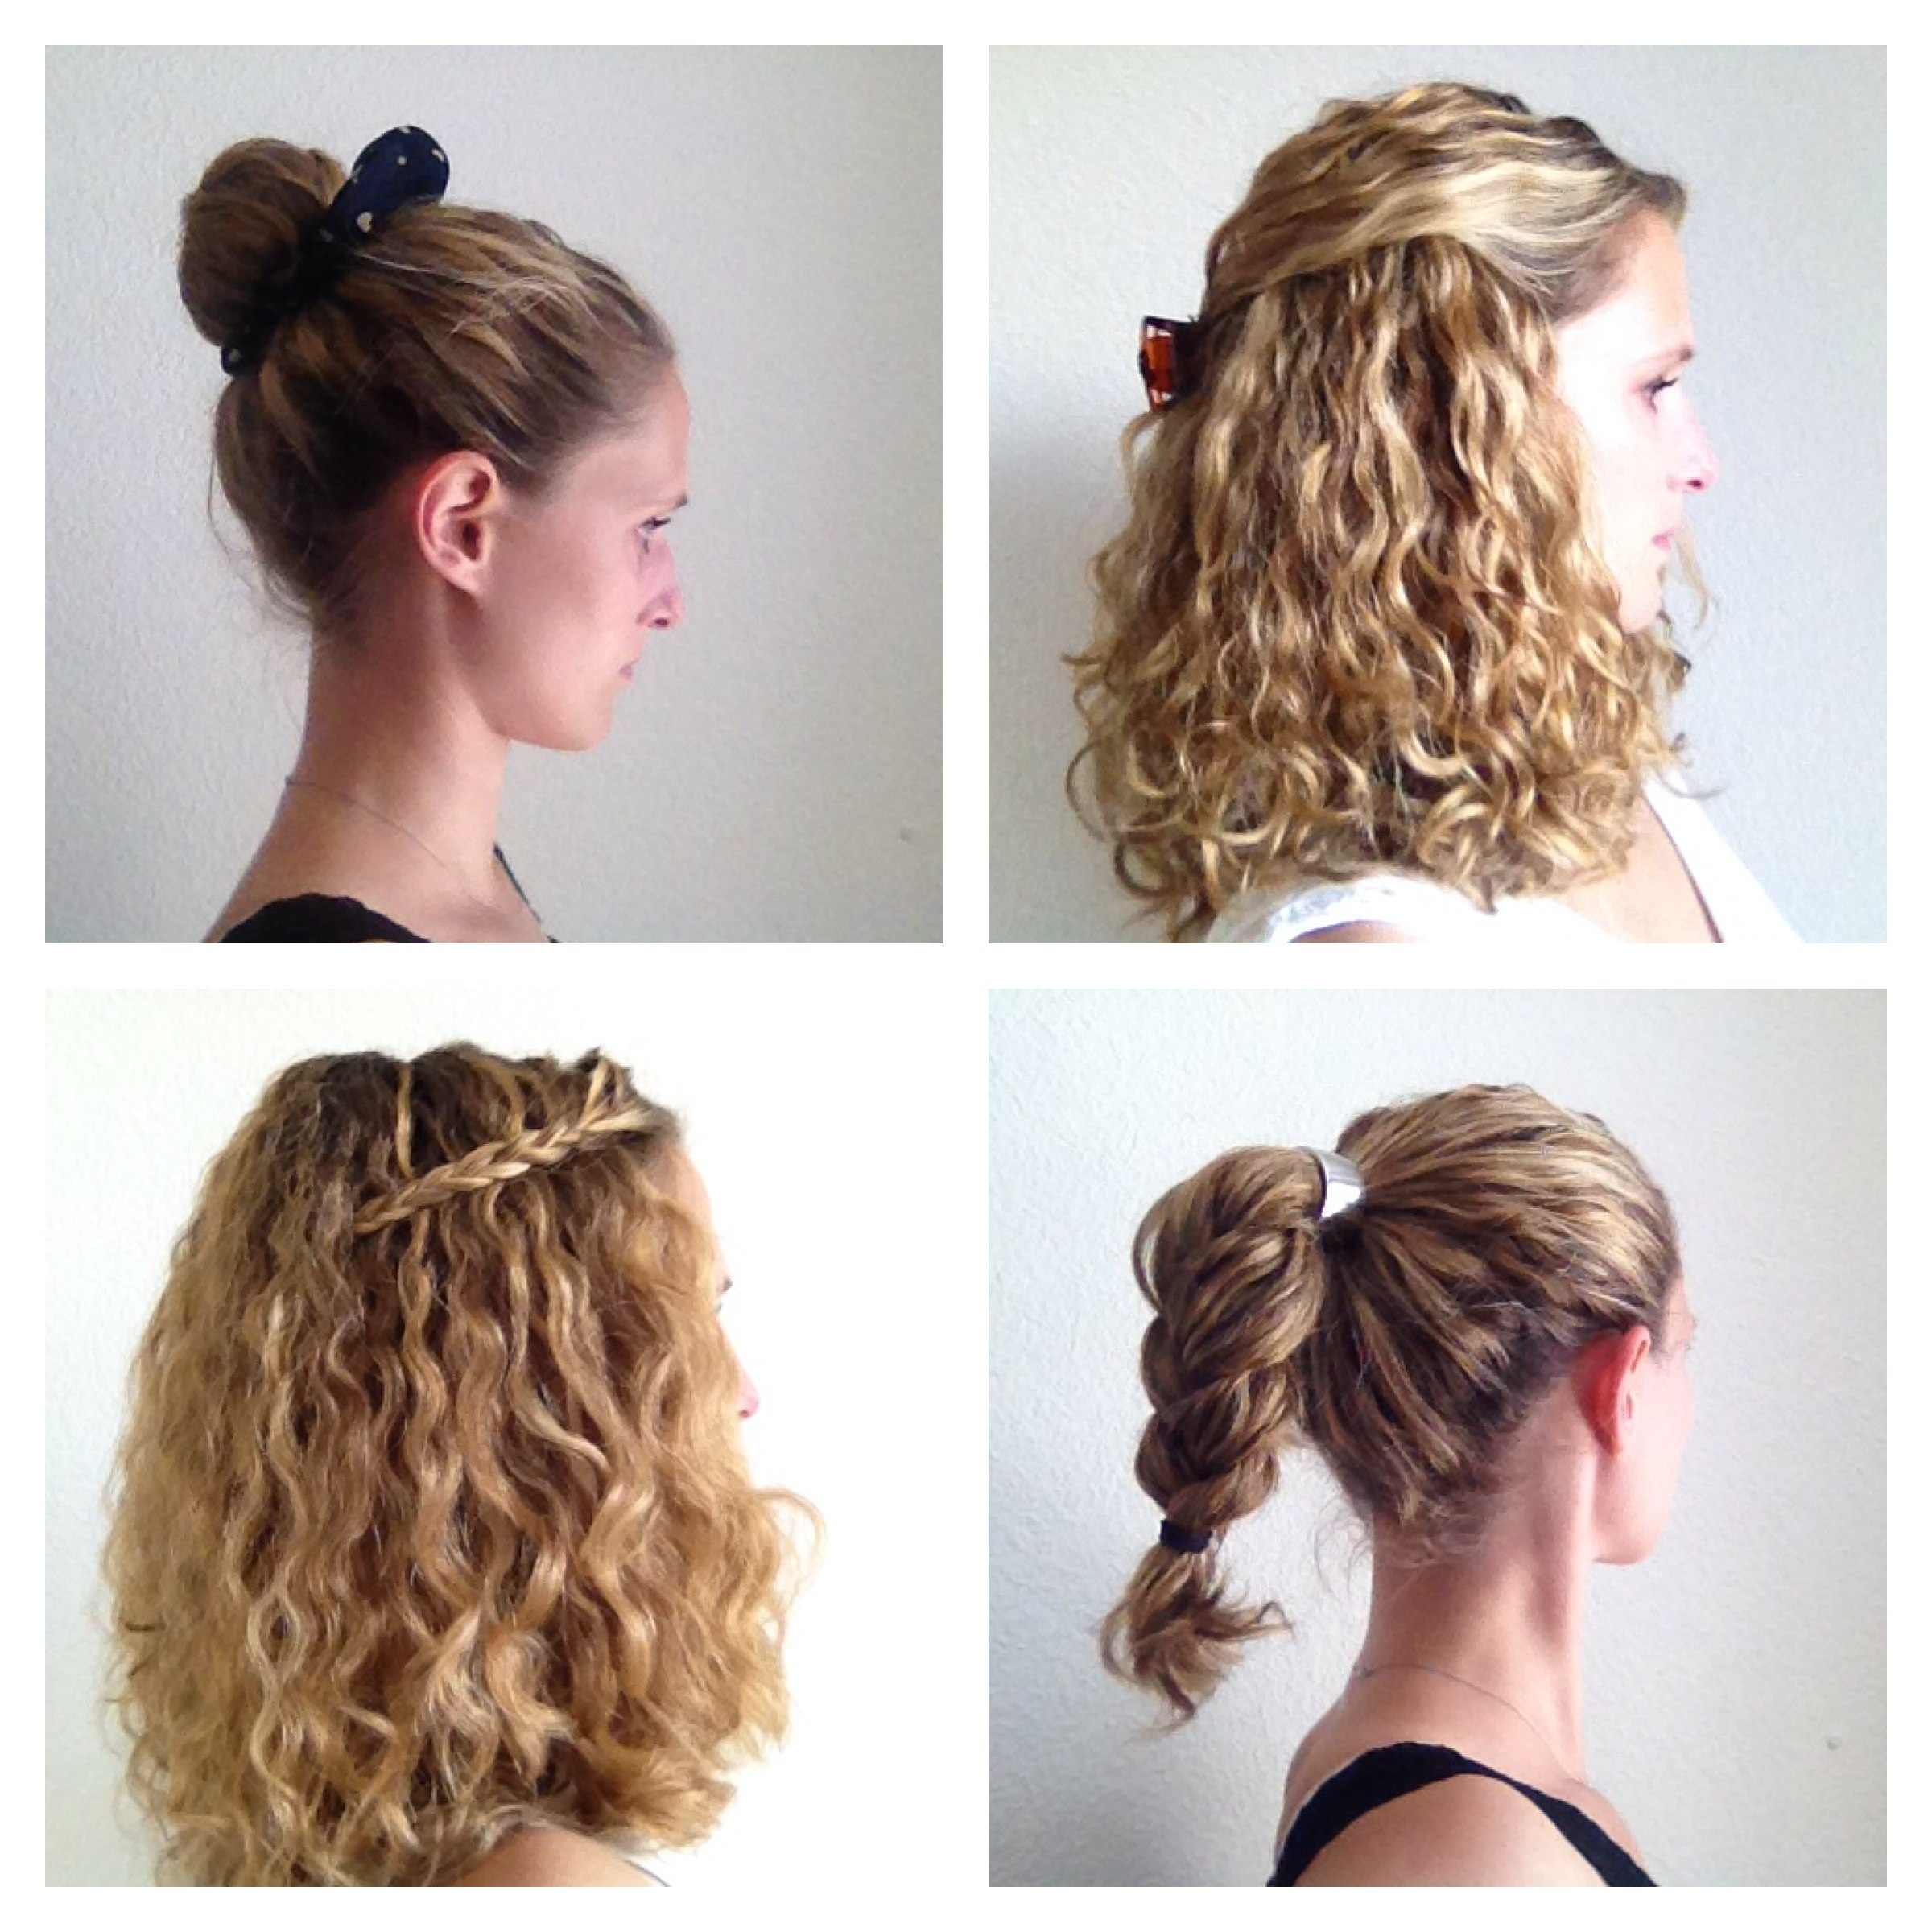 Four Styling Ideas For Curly Hair JustCurly Com